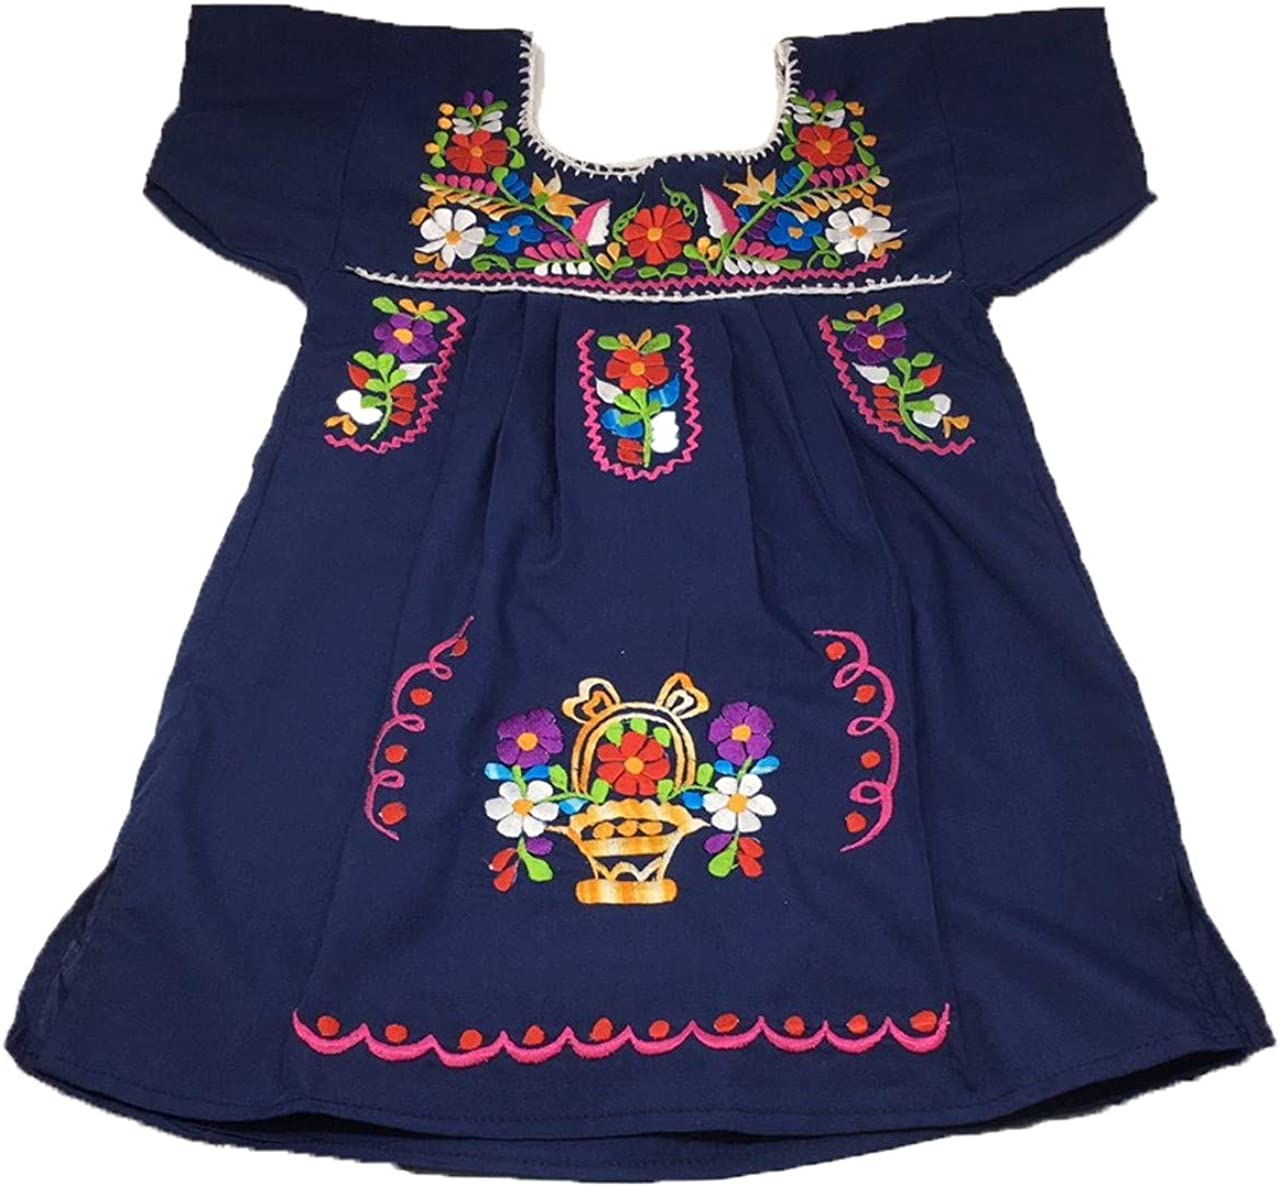 Mexican Clothing Size New life 2 Baby Tehuacan Color Dress Girls Cheap super special price